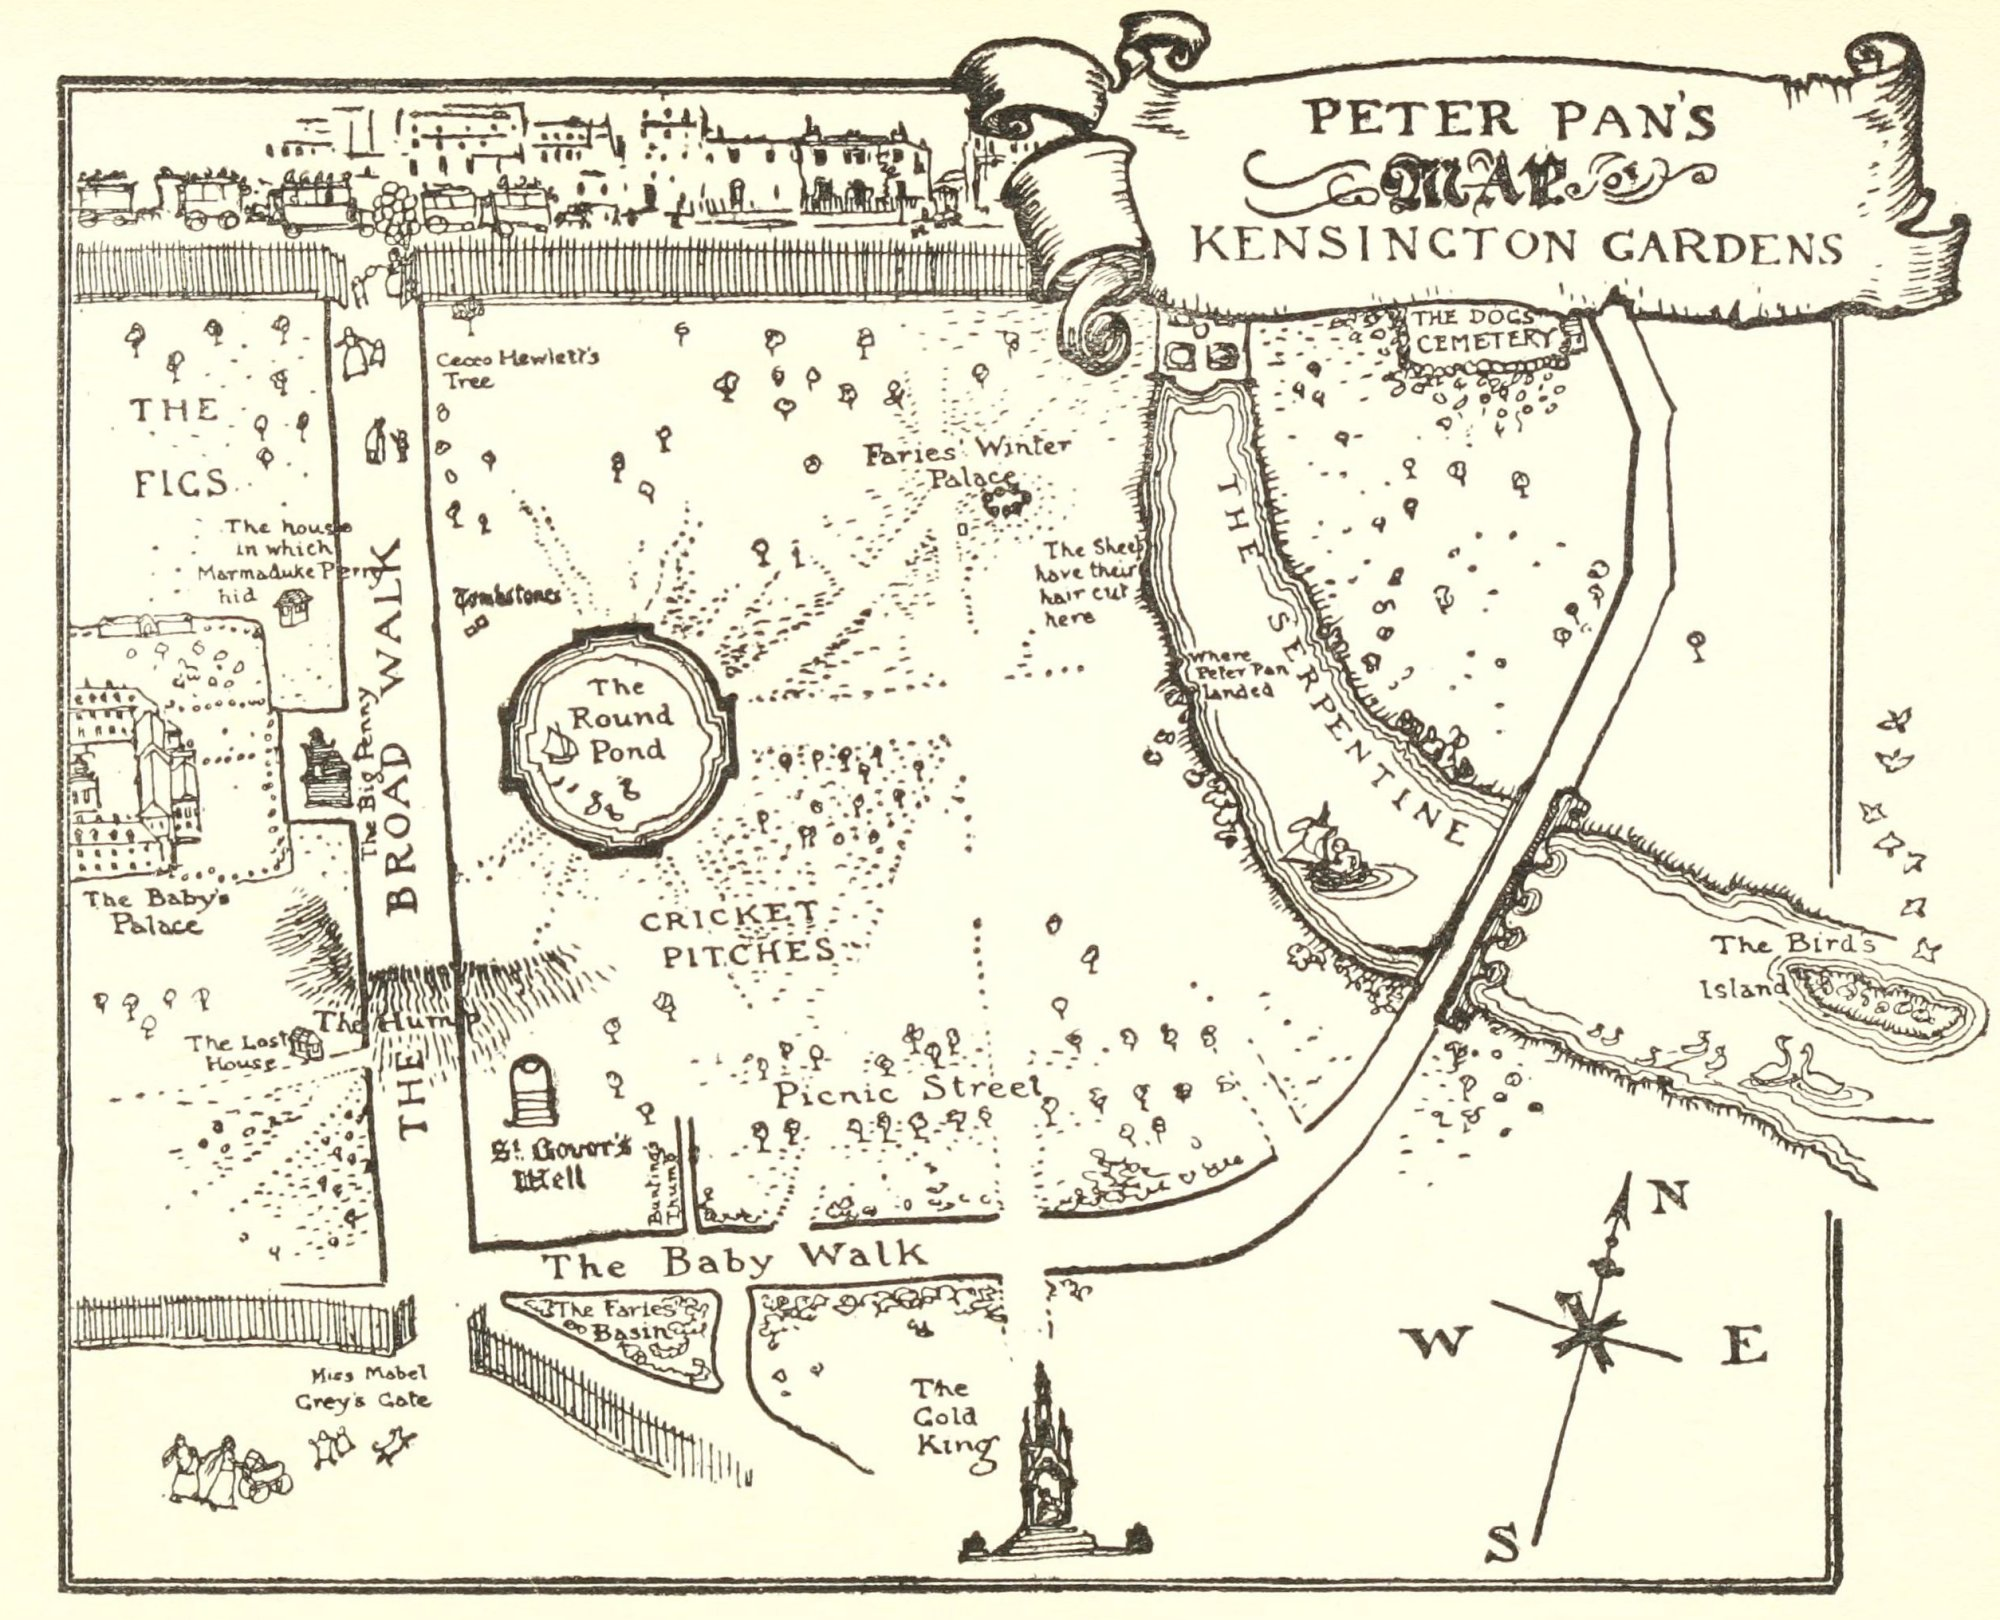 Peter Pans Map of Kensington Gardens